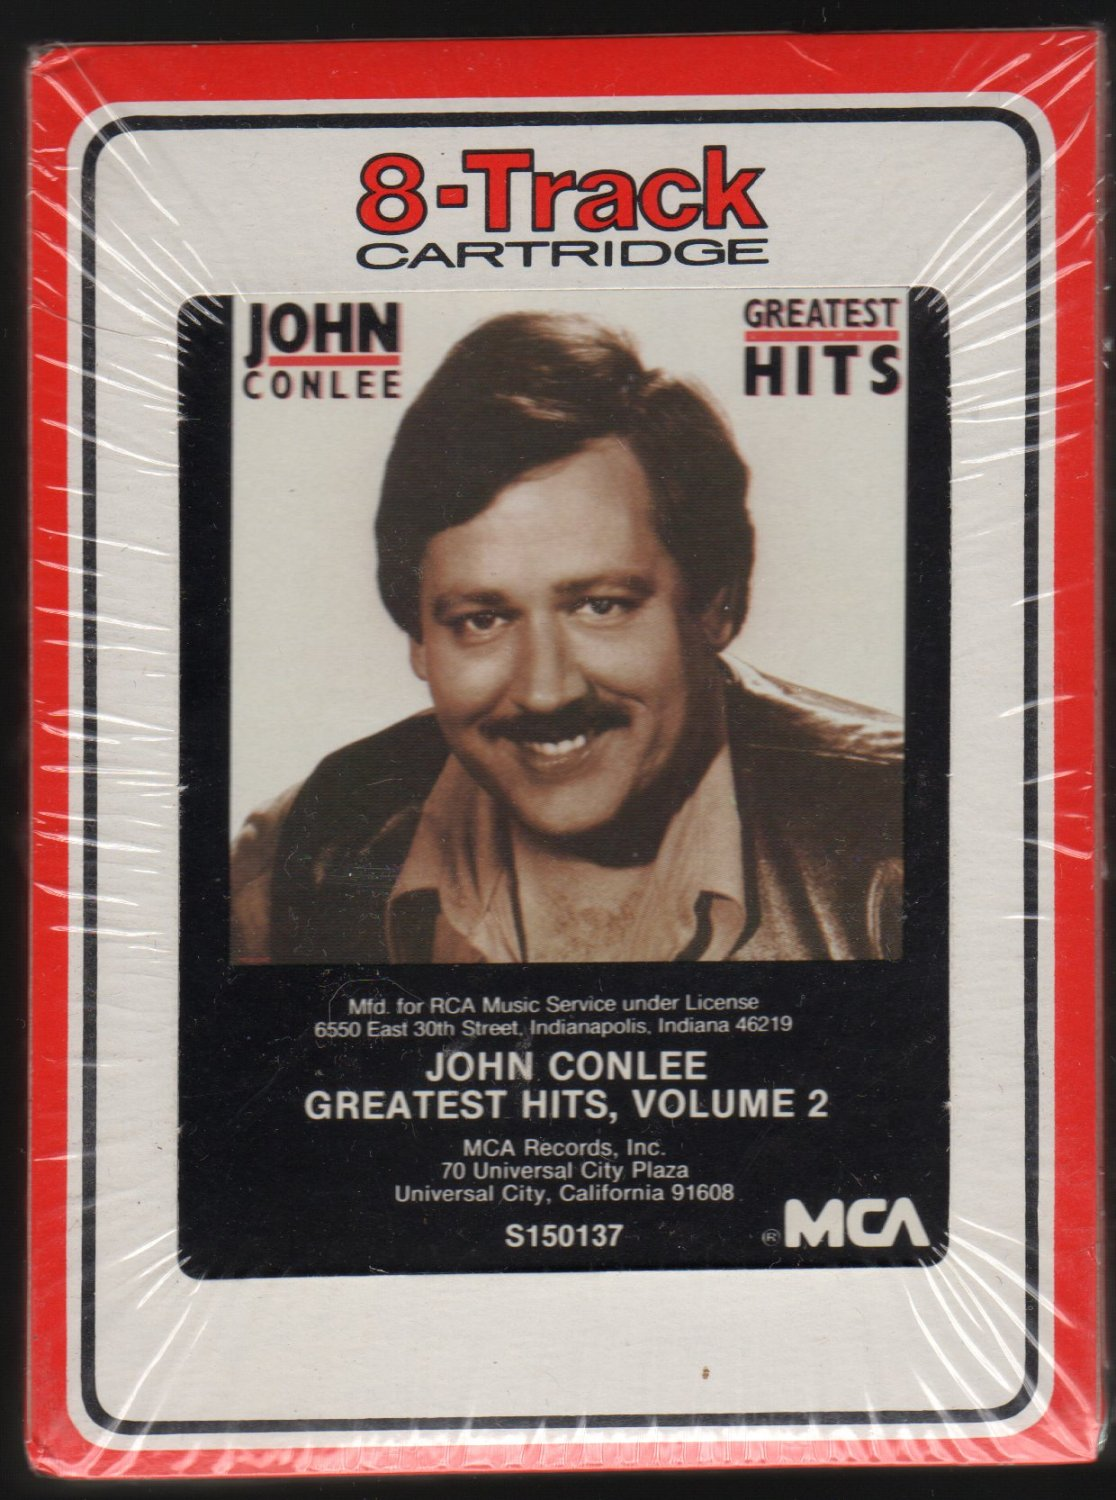 John Conlee - John Conlee's Greatest Hits Vol 2 1985 RCA Sealed A18F 8-TRACK TAPE